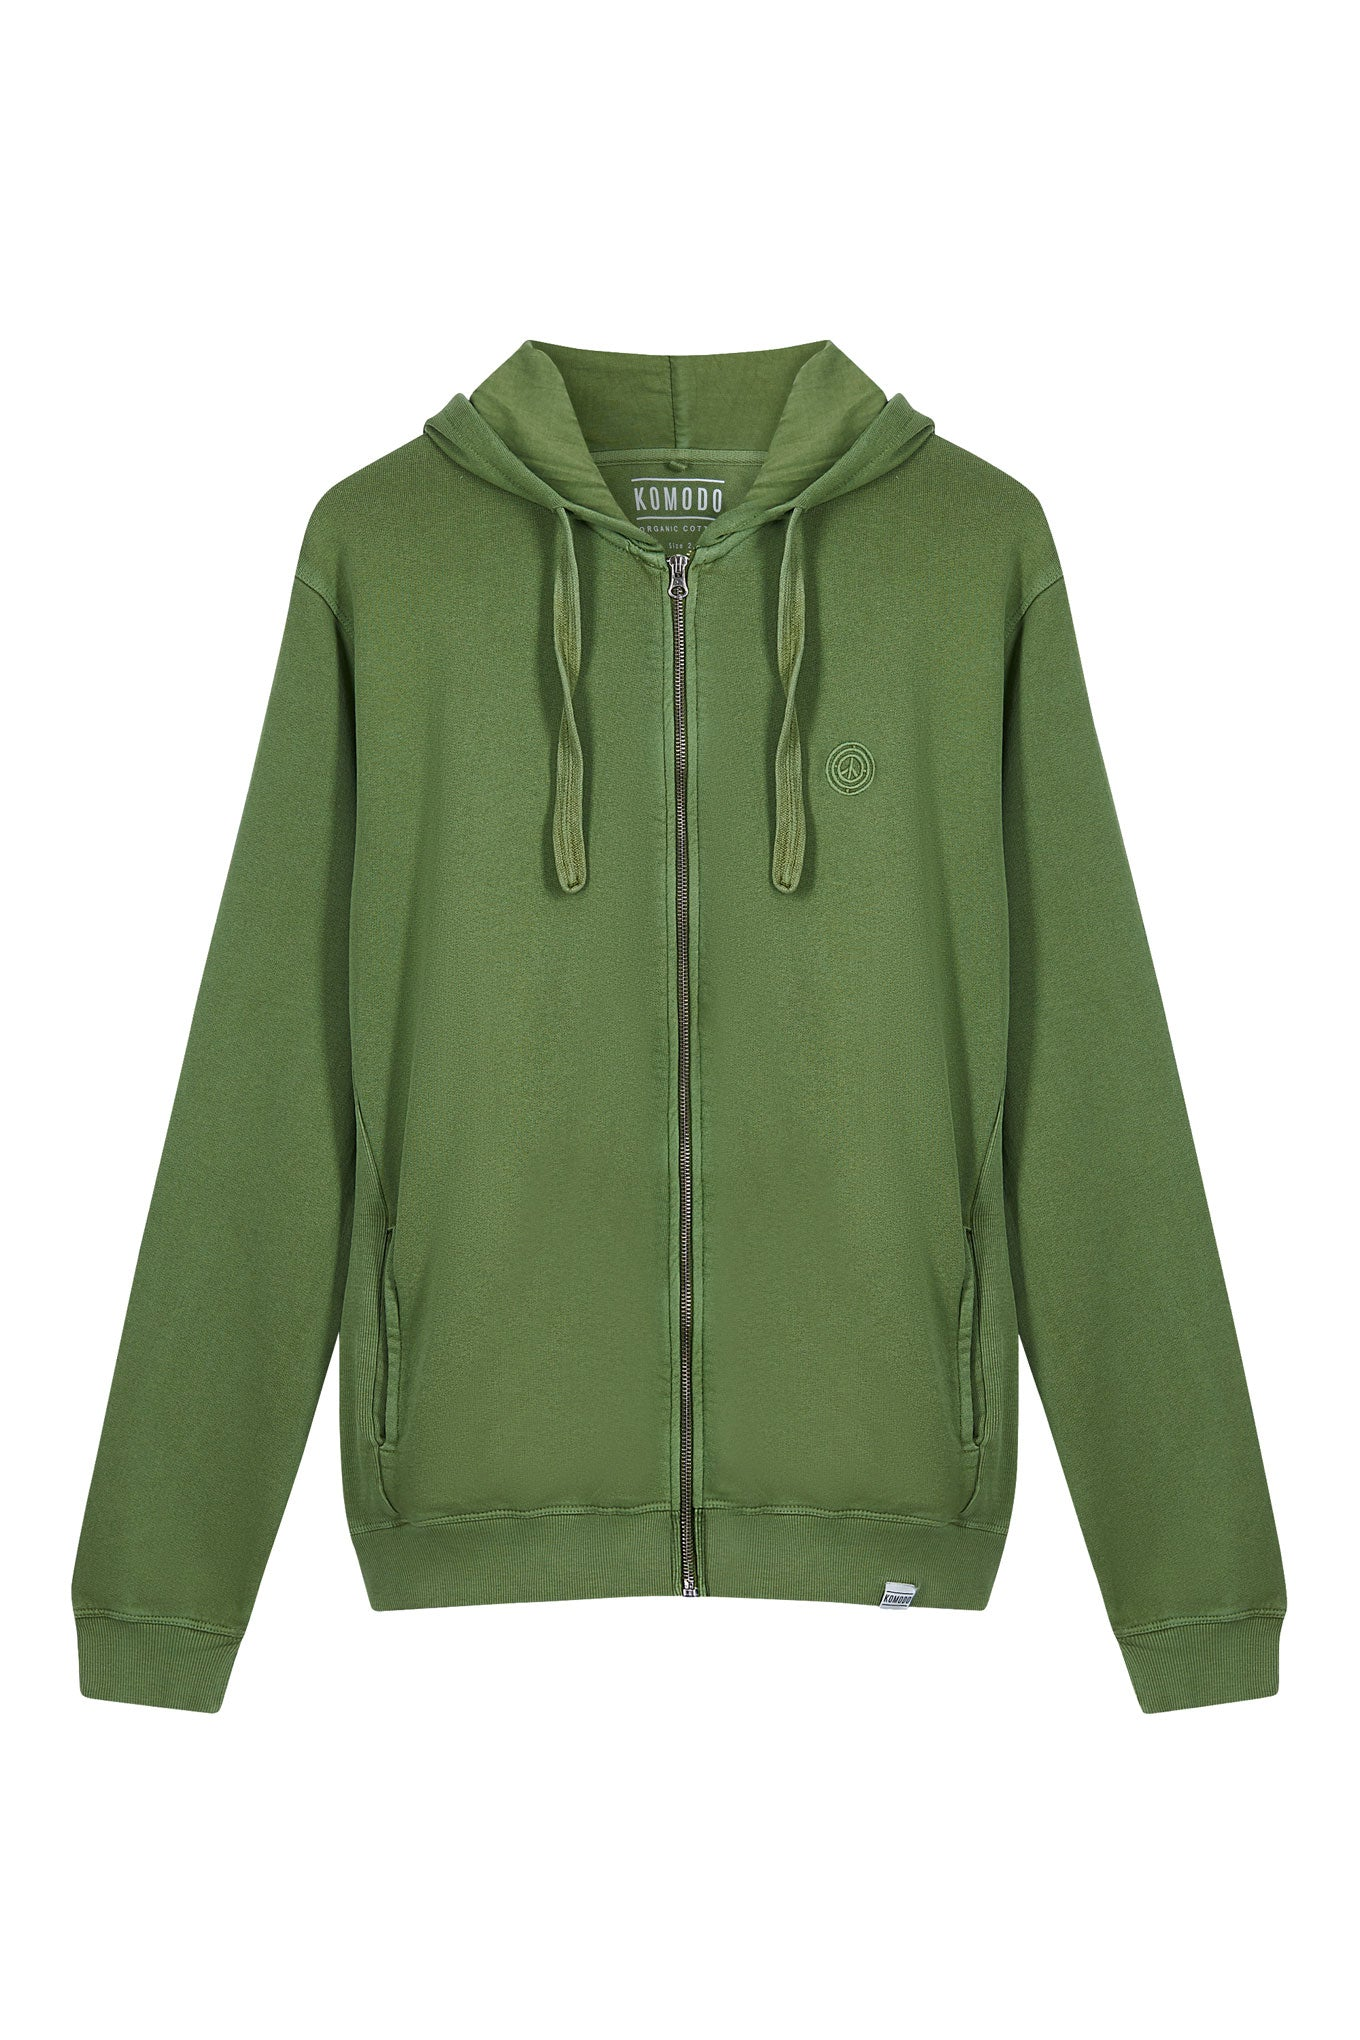 APOLLO Womens Organic Cotton Zip Hoodie Olive